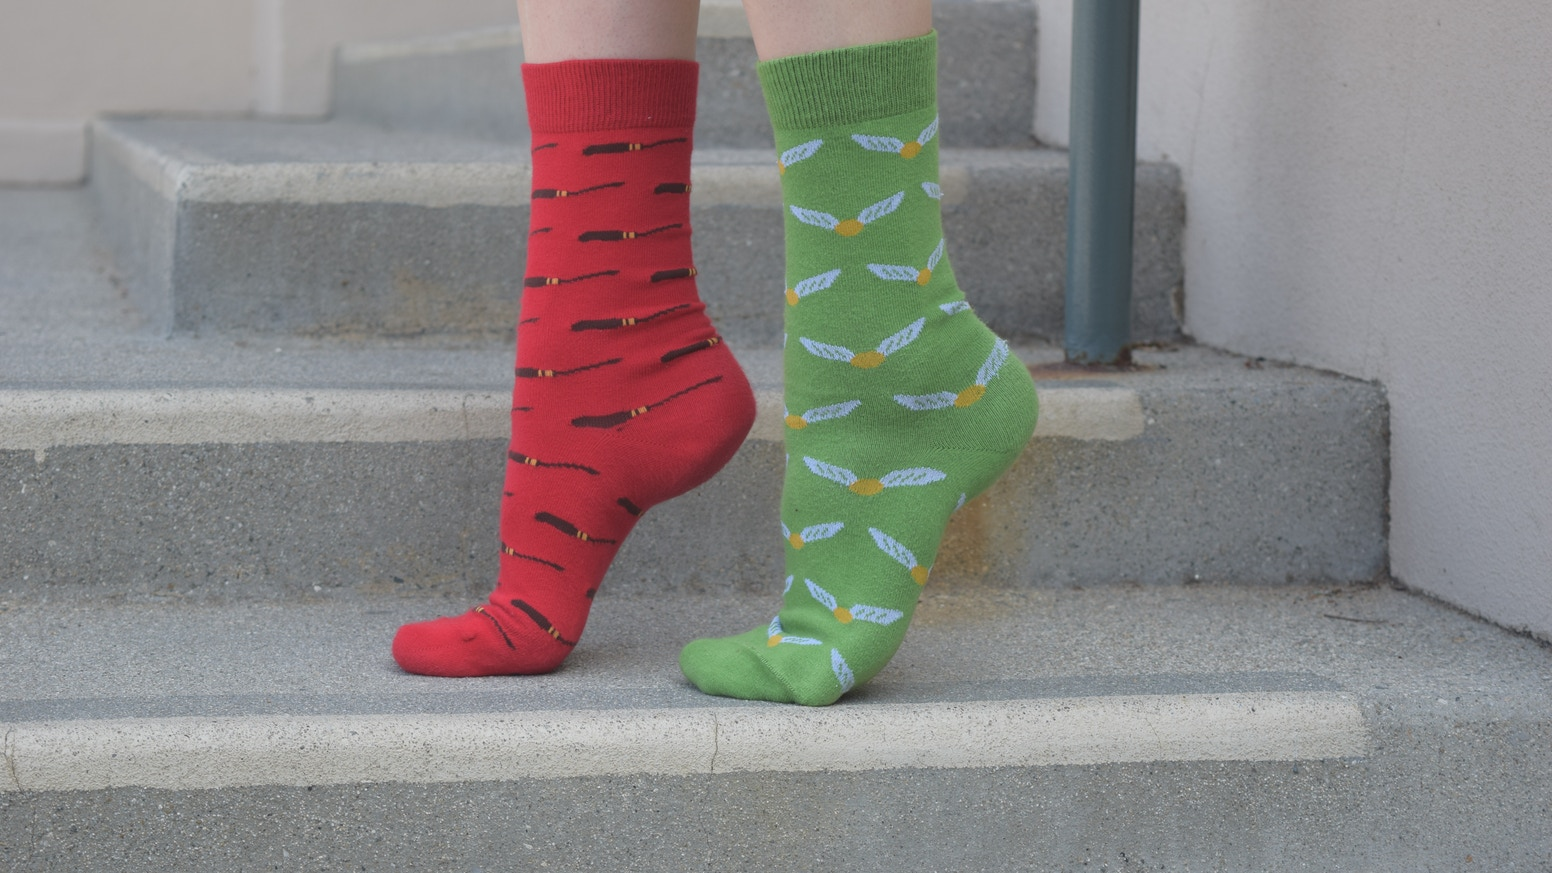 design inspired by a christmas gift from dobby the house elf in harry potter and the goblet of fire jacquard mens dress socks